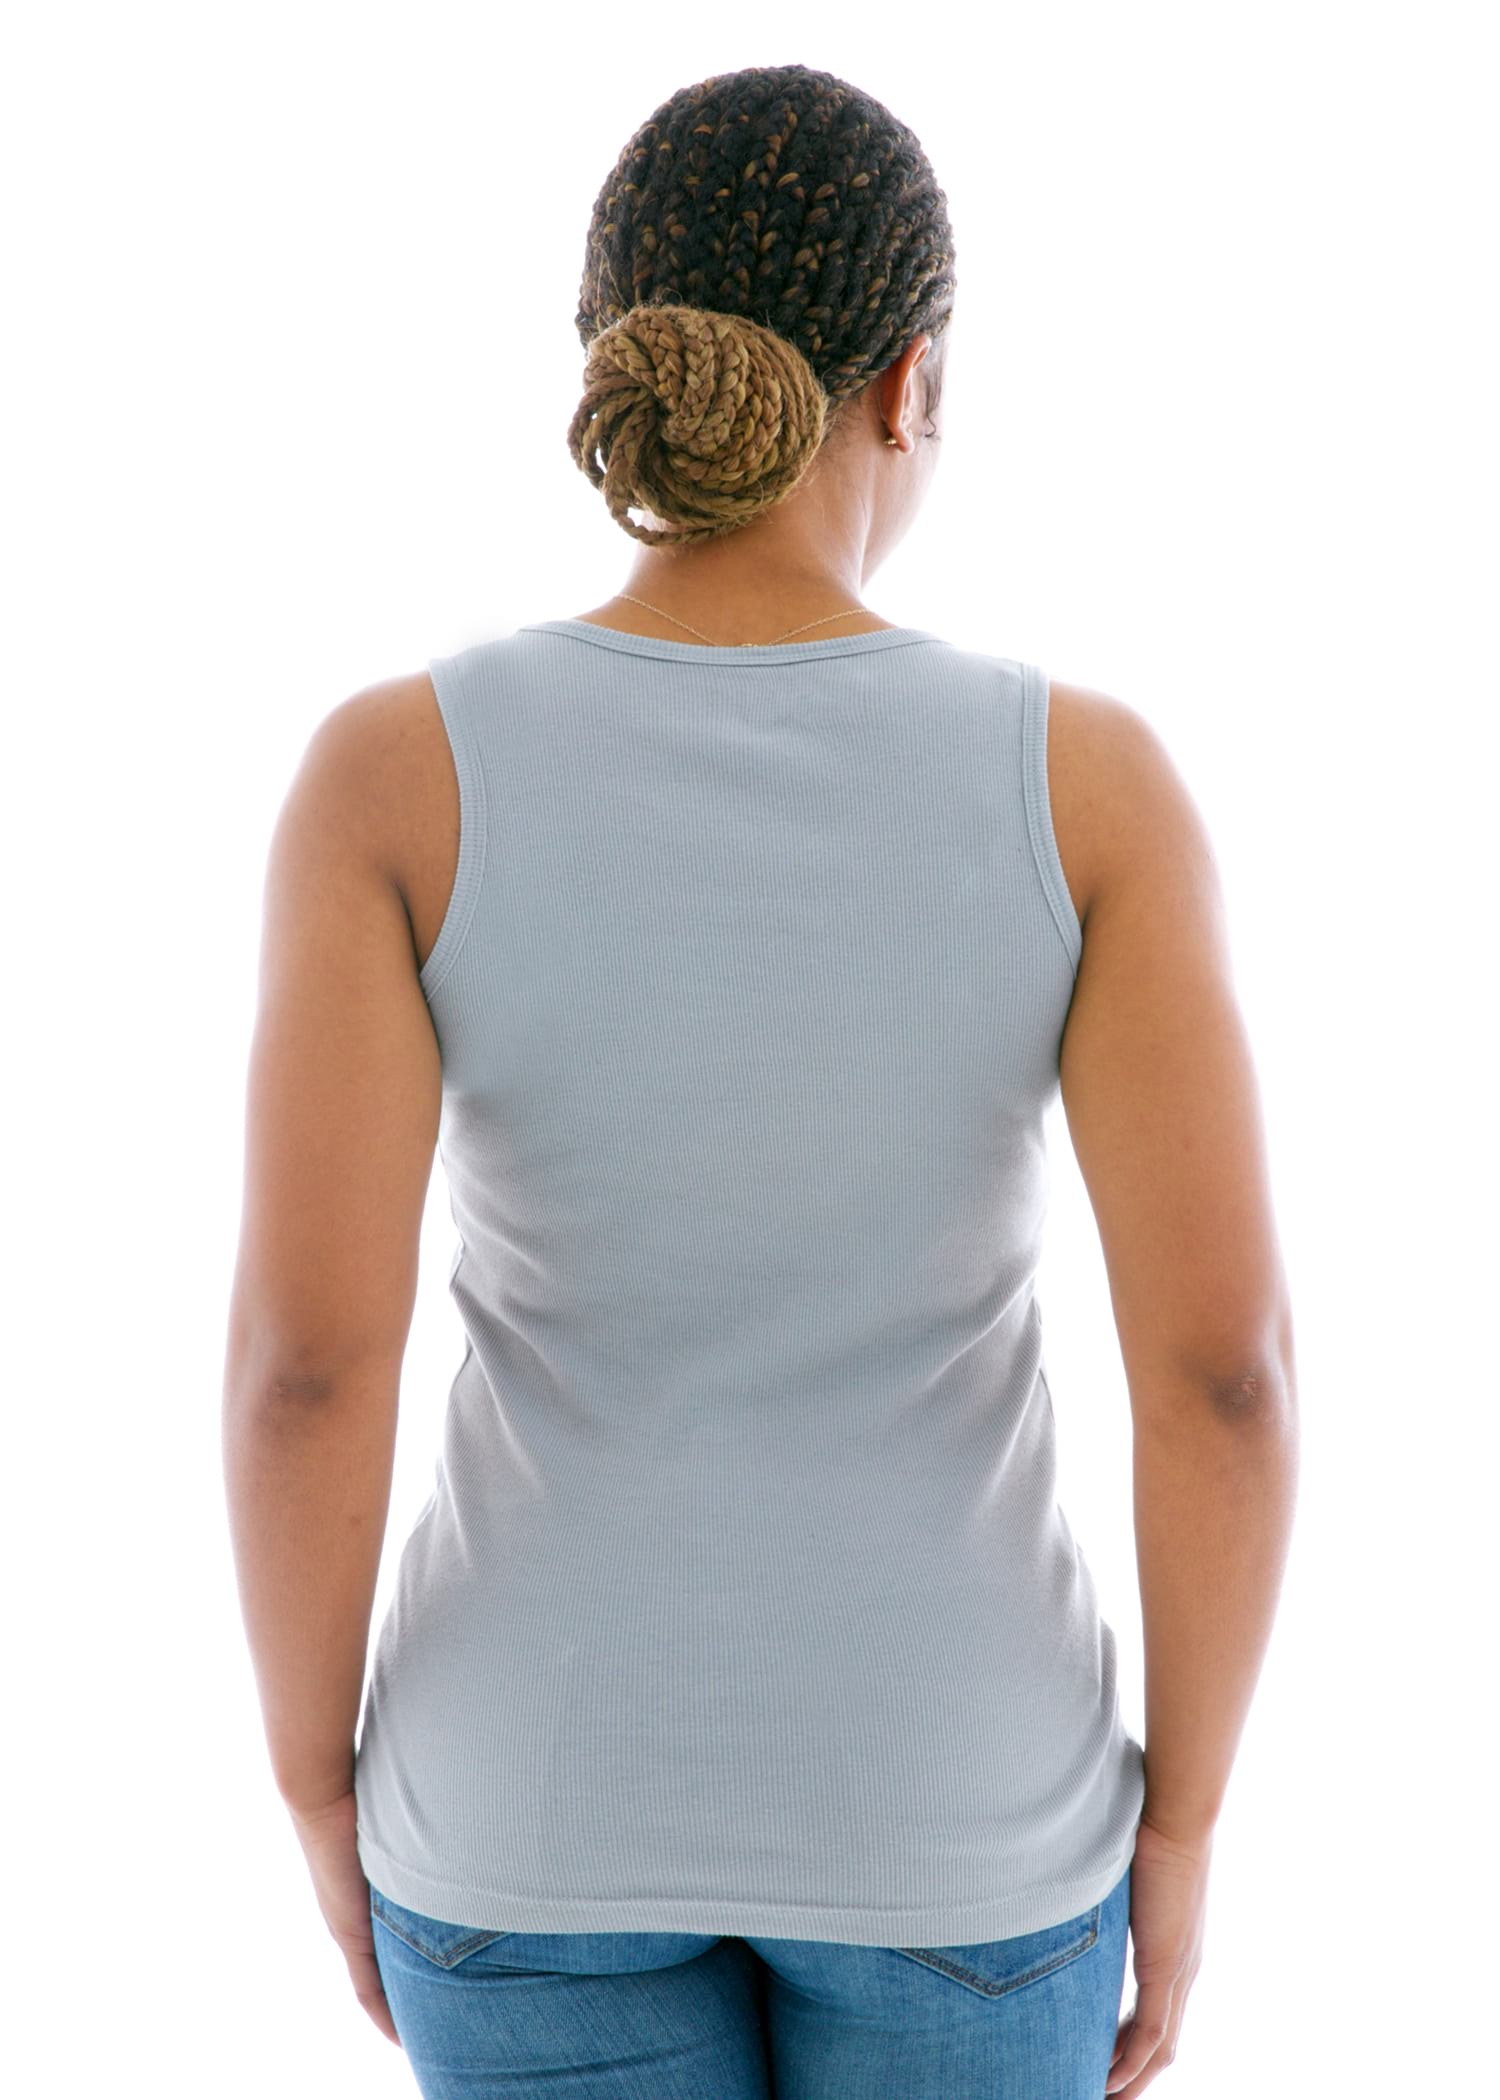 Skinny Tank Top Back View